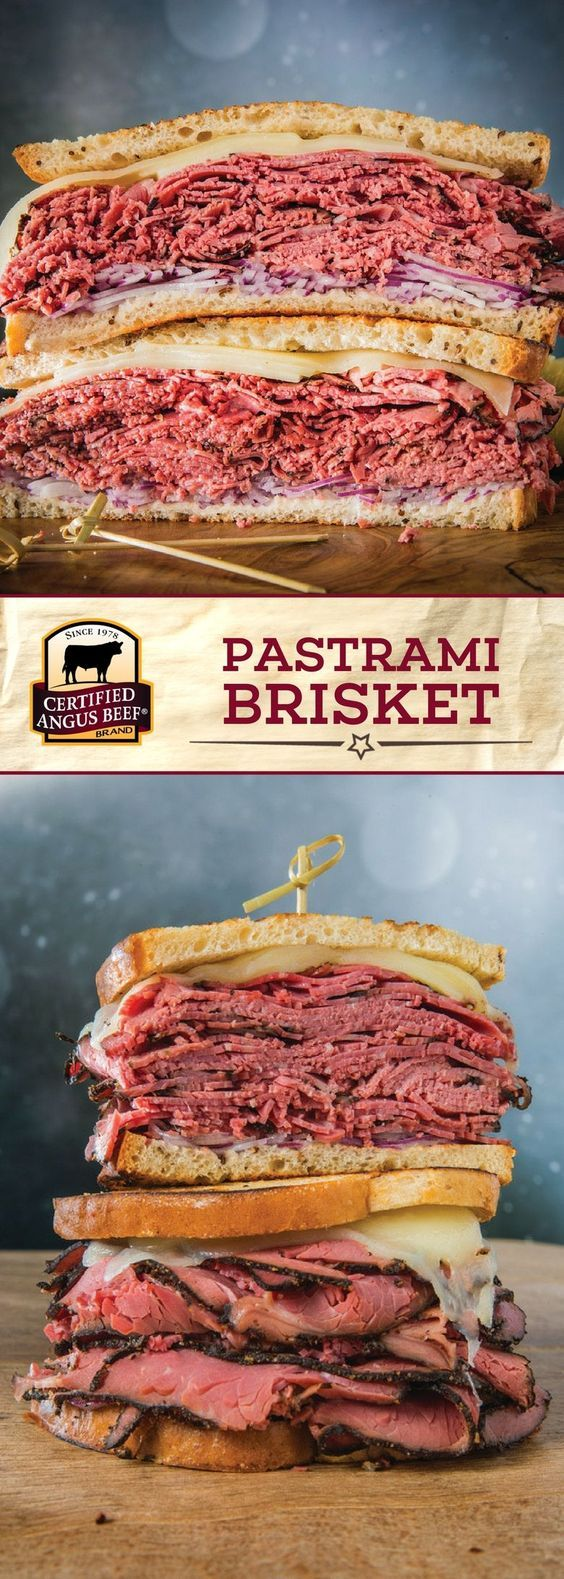 Make your own pastrami from scratch right at home with Certified Angus Beef®️ brand brisket flat! Once you try this made-from-scratch pastrami brisket, you won't ever want to go back to store-bought. Smoked on low for 7 hours, this deliciously prepared pastrami is PERFECT for your favorite sandwiches. #bestangusbeef #certifiedangusbeef #beefrecipe #pastrami #brisket